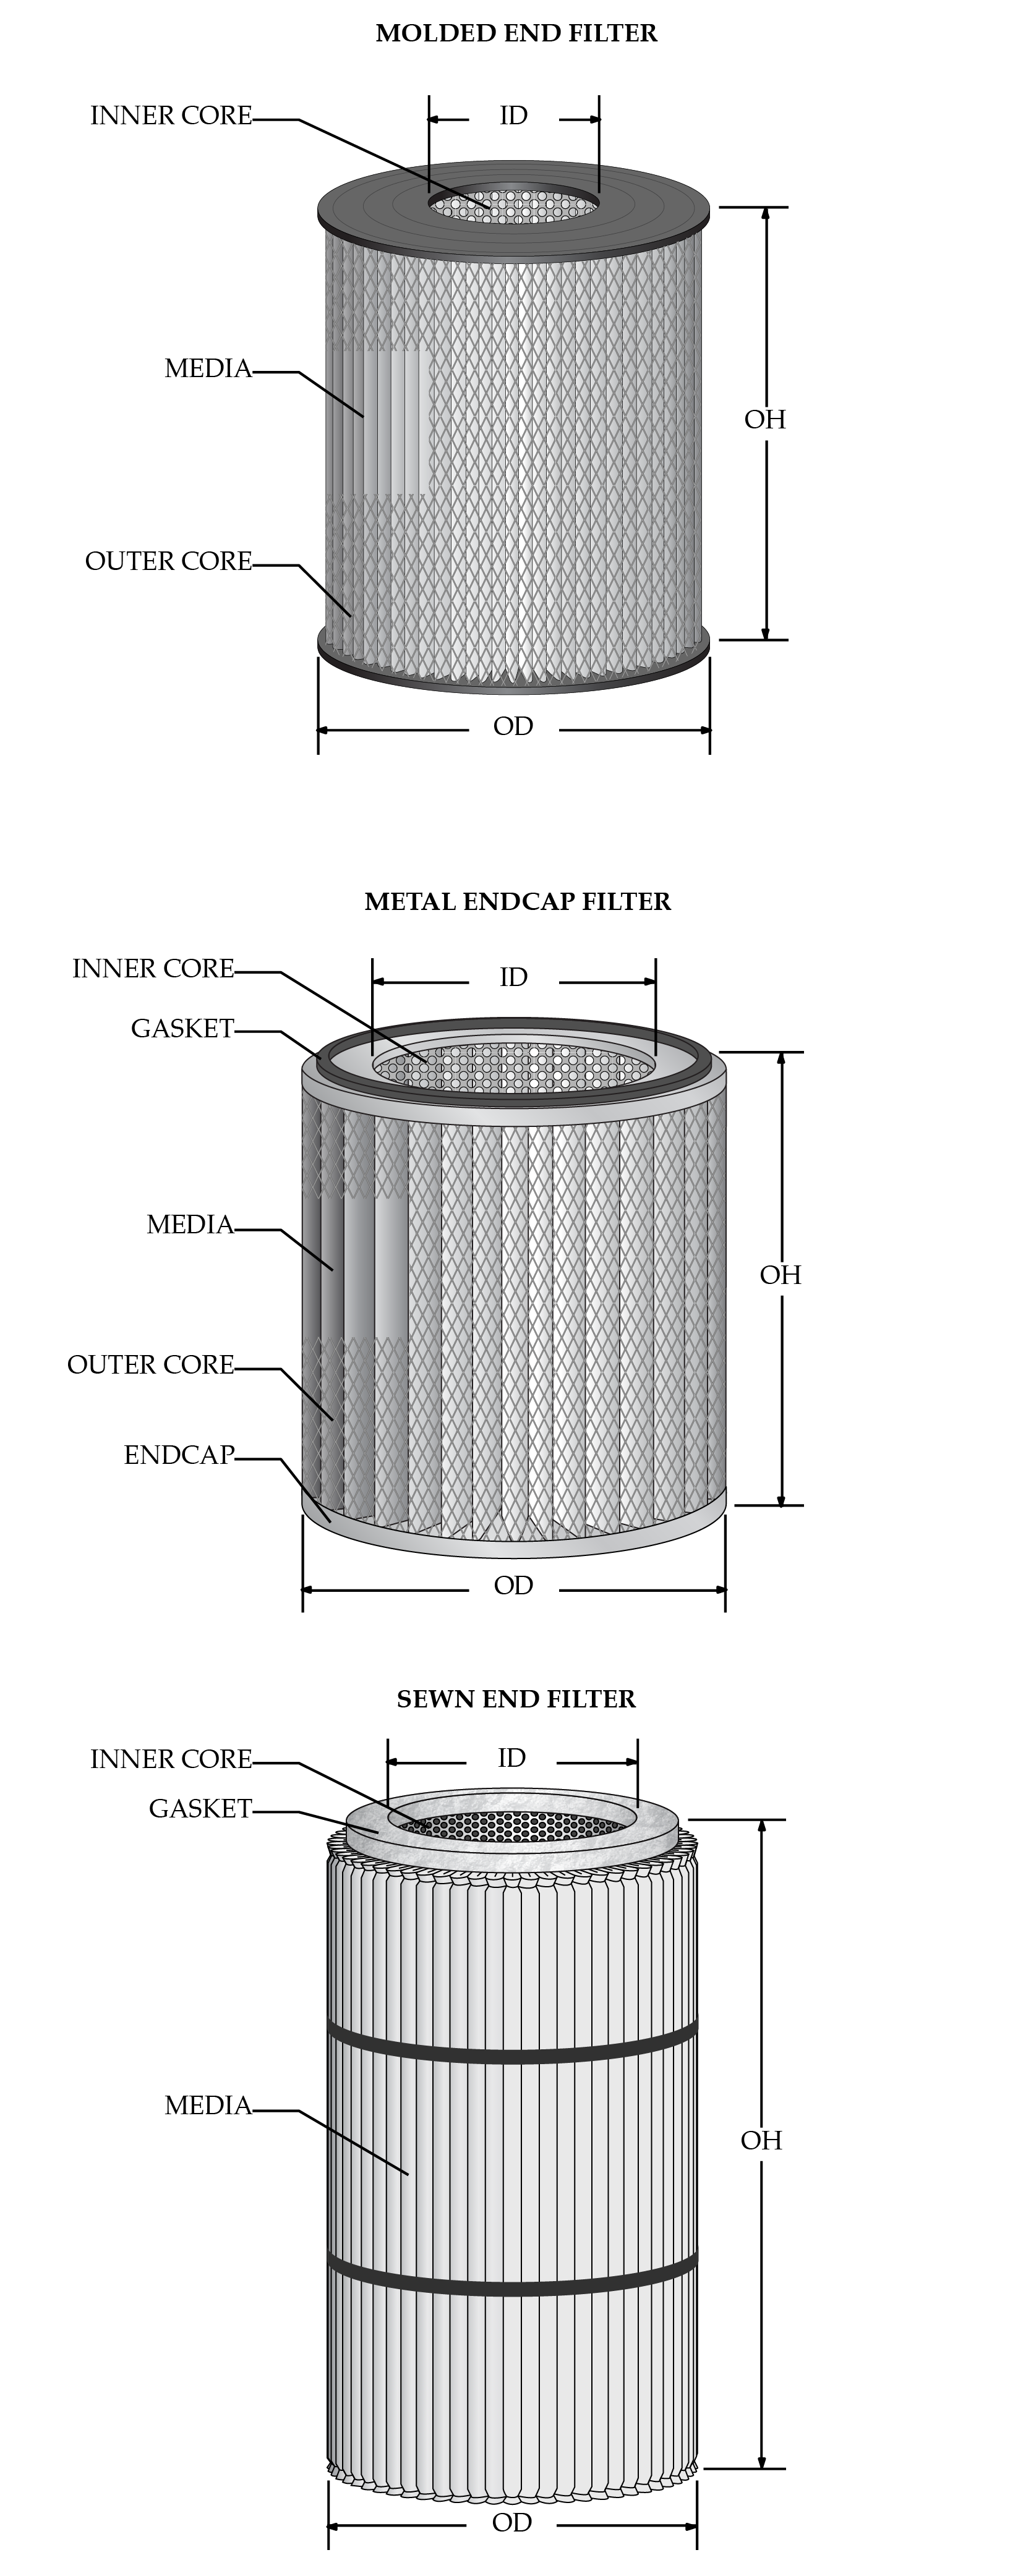 High quality, custom filters designed to your specs! For industrial applications; Air intake filters, blower filters, compressor filters, gas pipeline filters, vacuum filters & more!